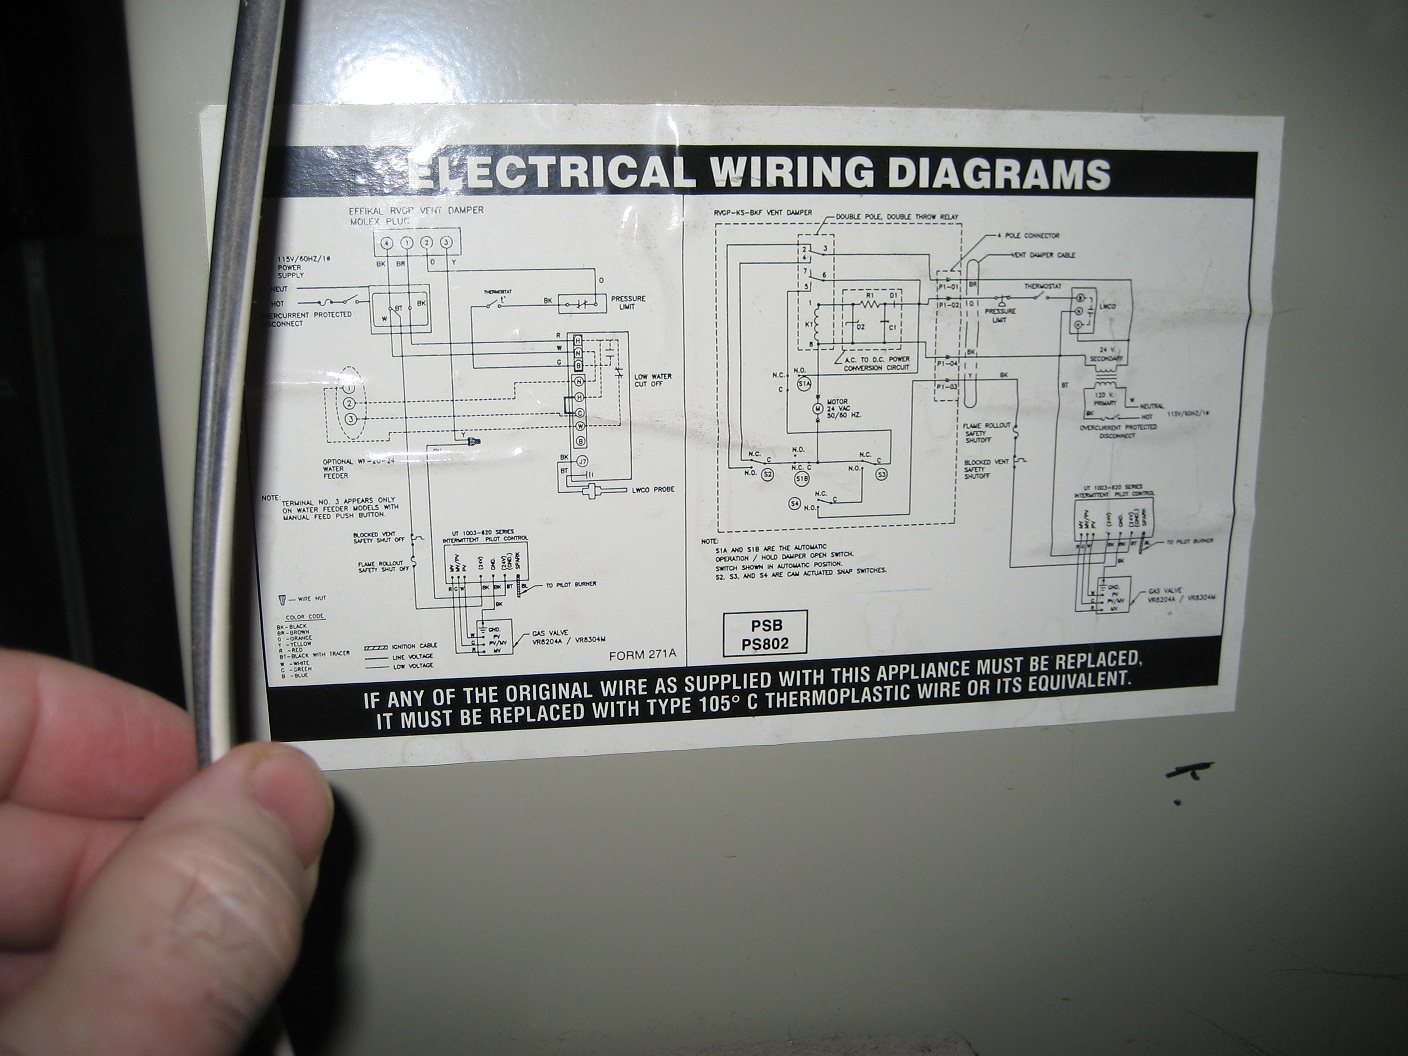 Dunkirk Steam Boiler Wiring Diagram Pores Auto Electrical Get Free Image